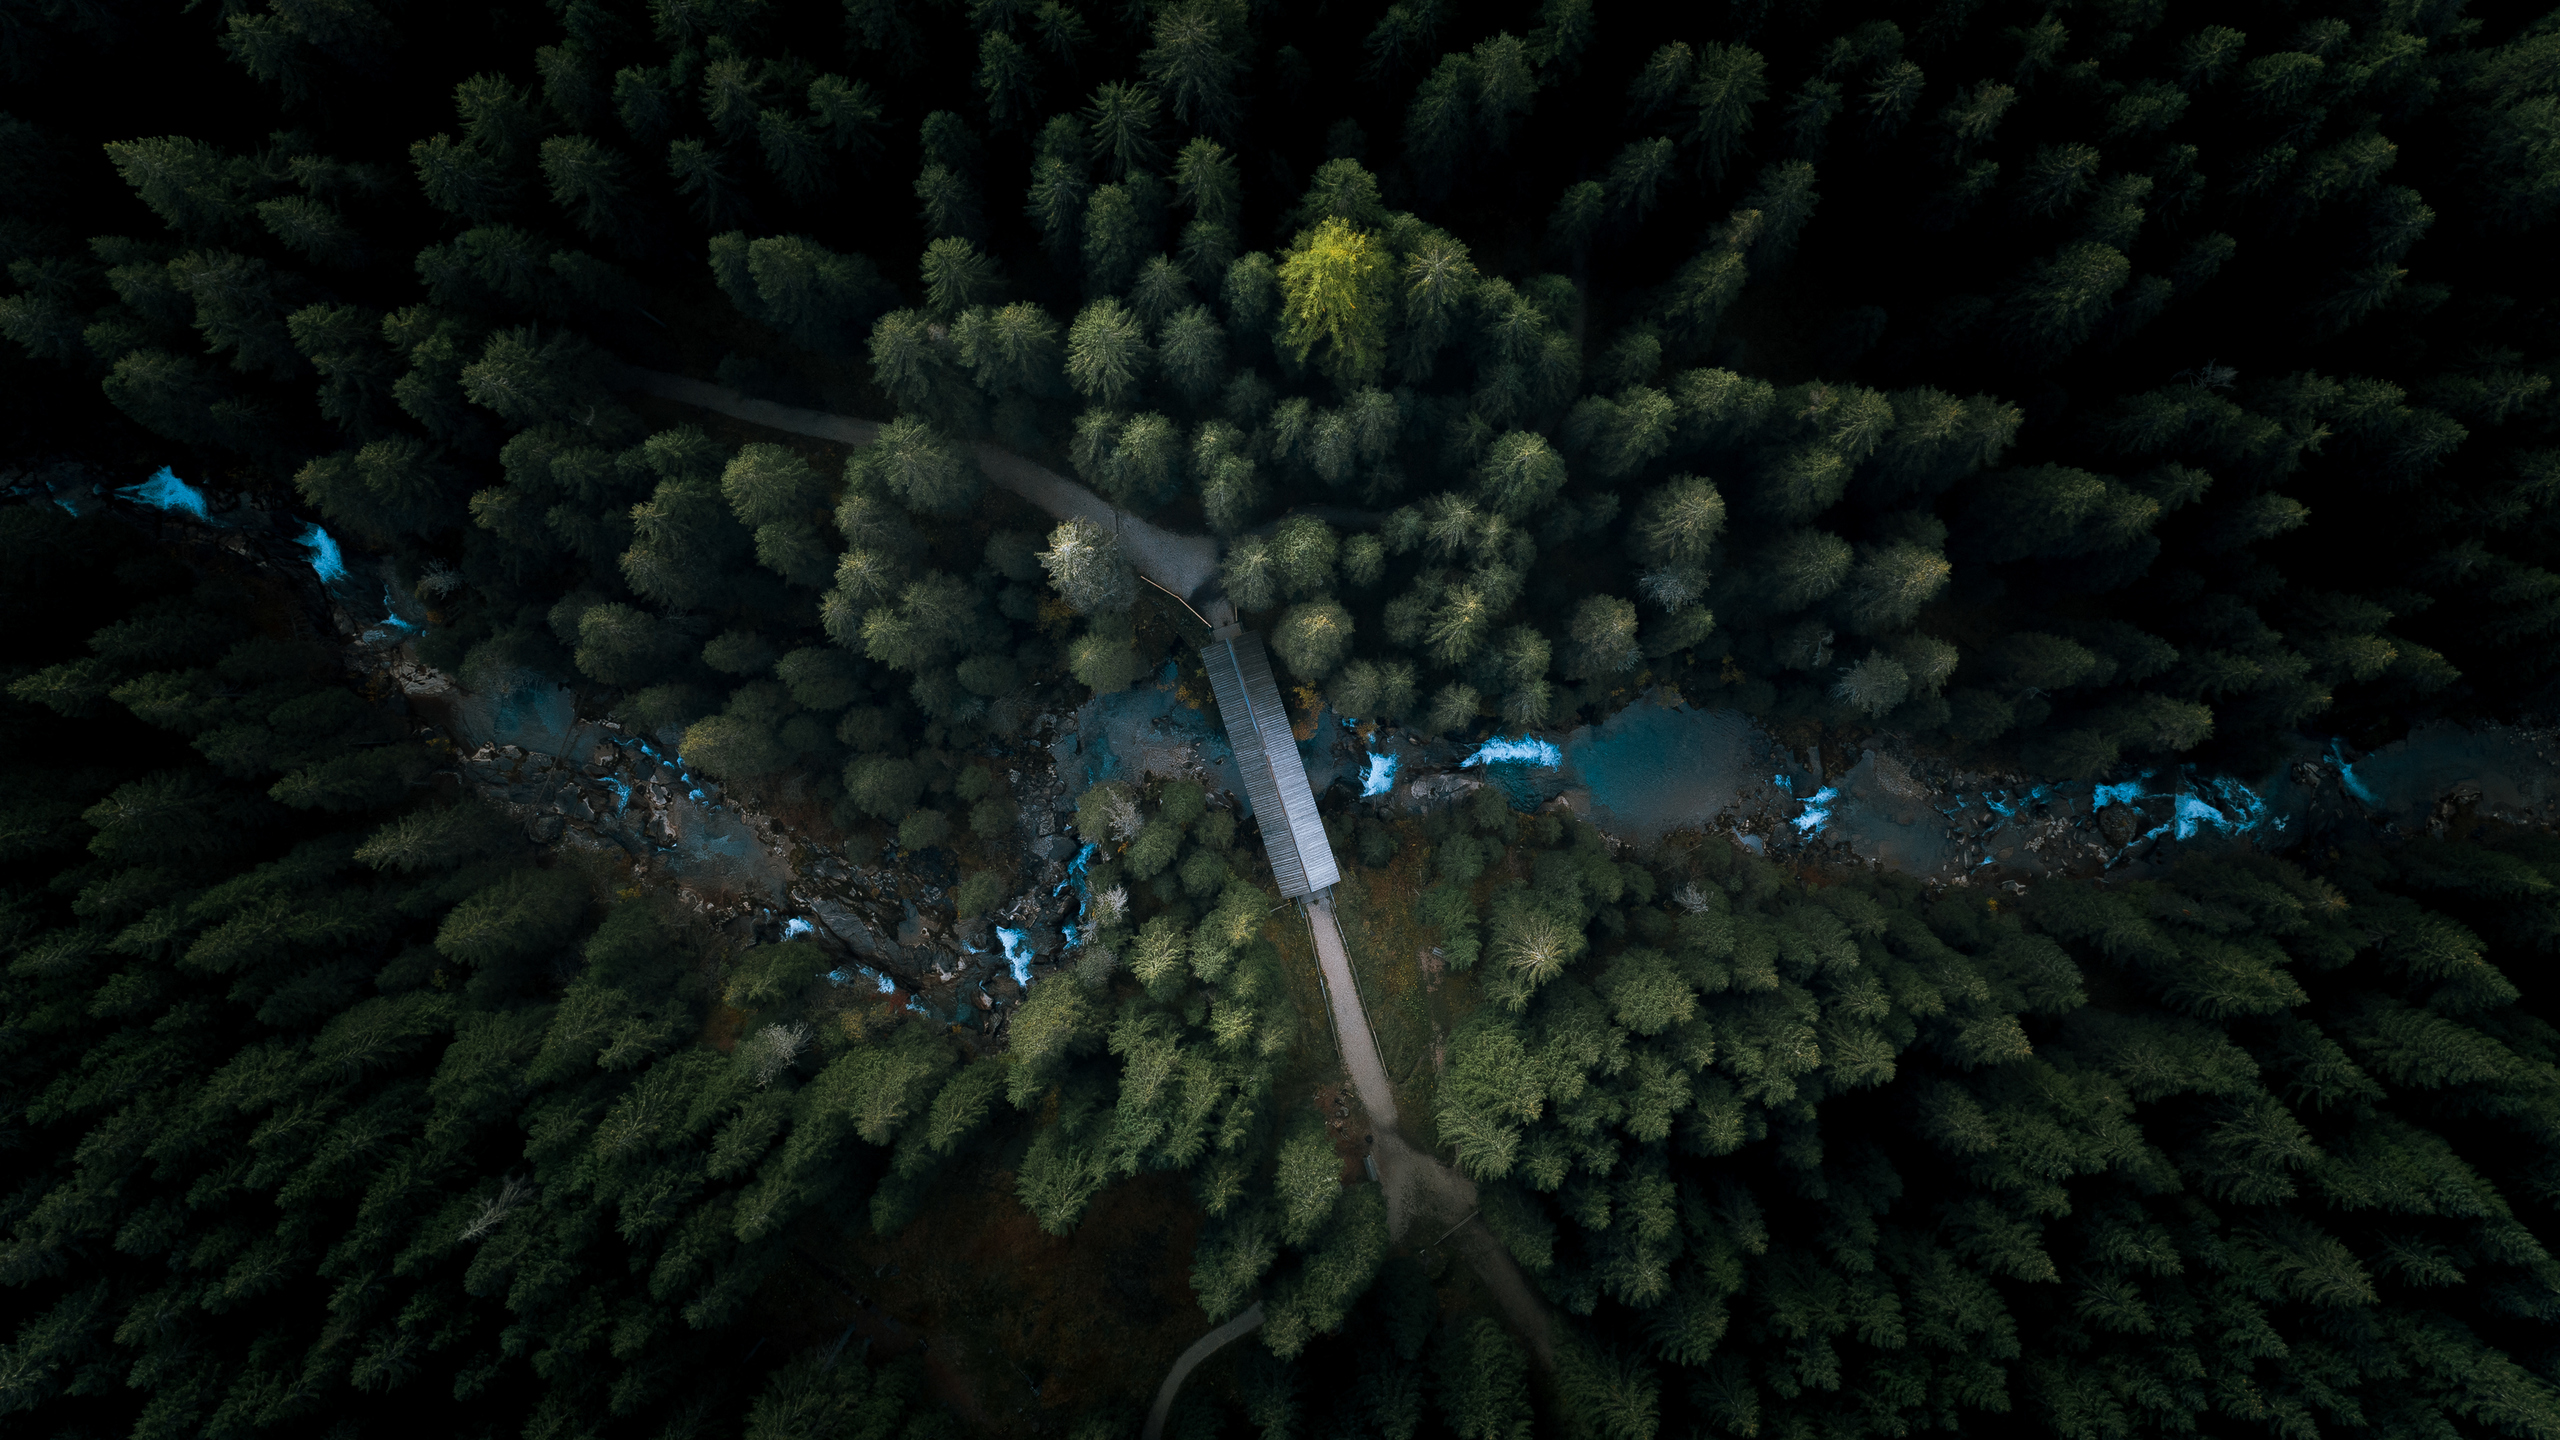 aerial-view-forest-4k-yr.jpg